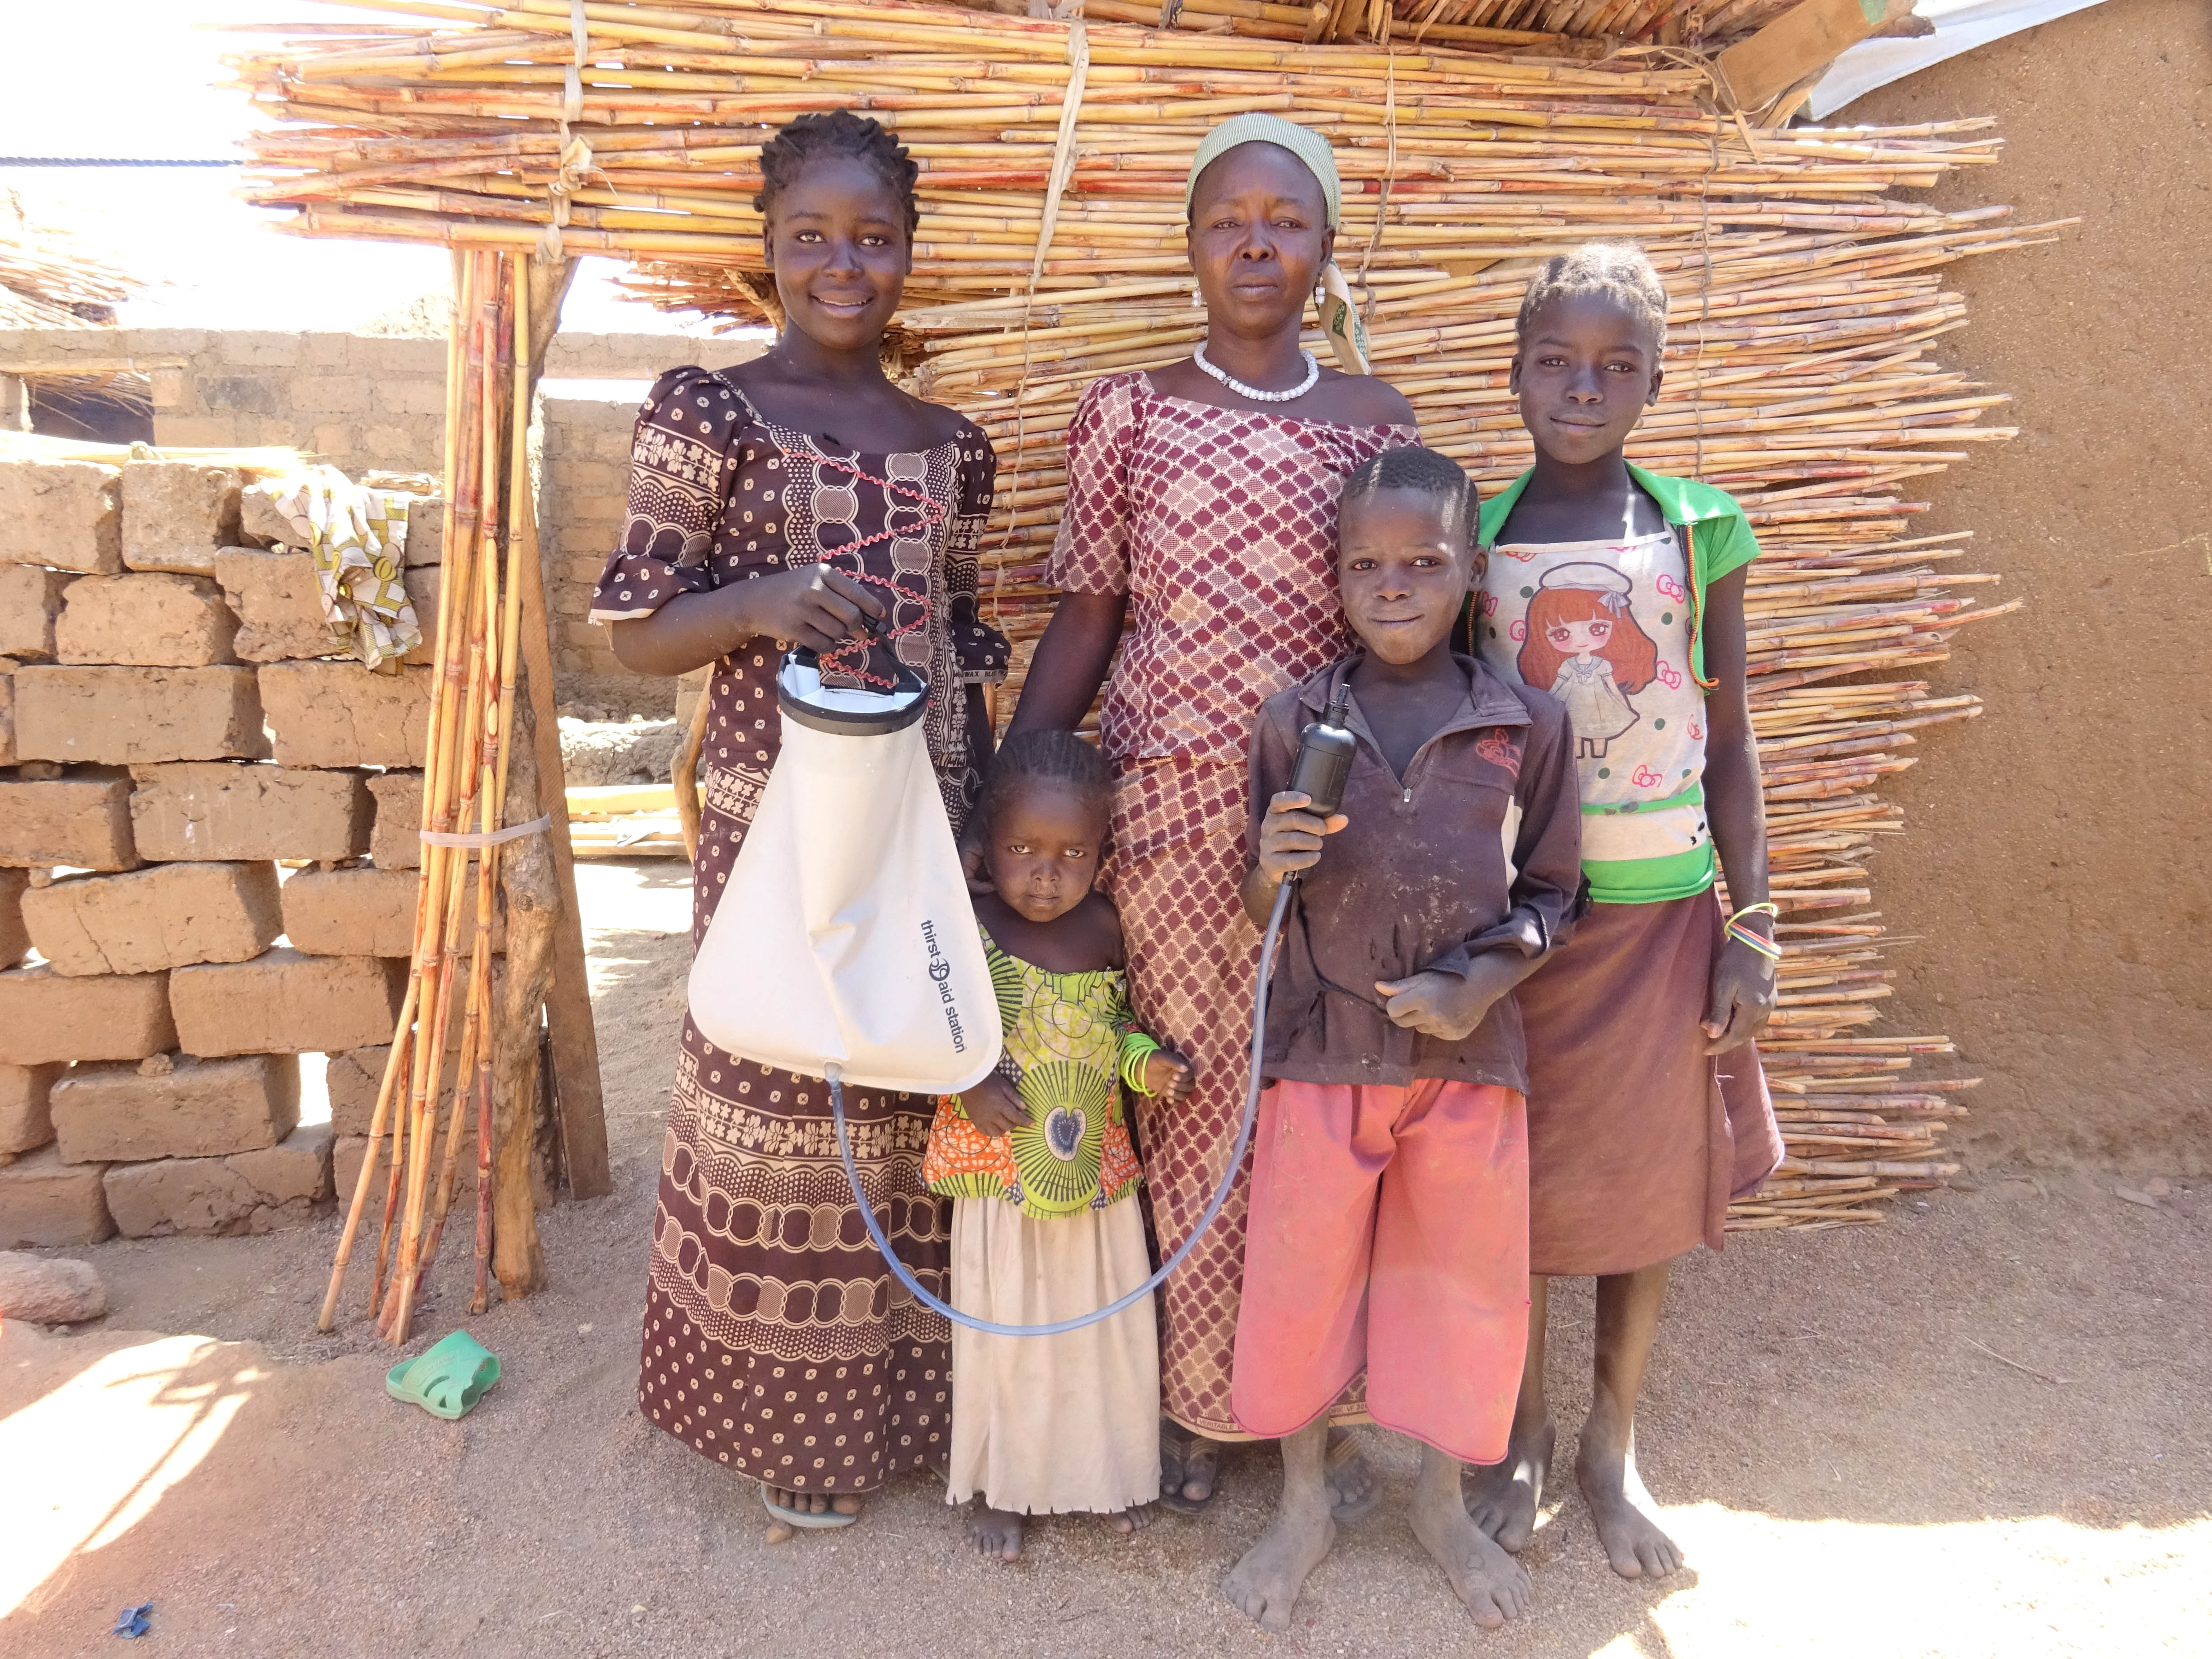 Maïramu and her four children in Cameroon are grateful for their water filter as it protects them from disease.